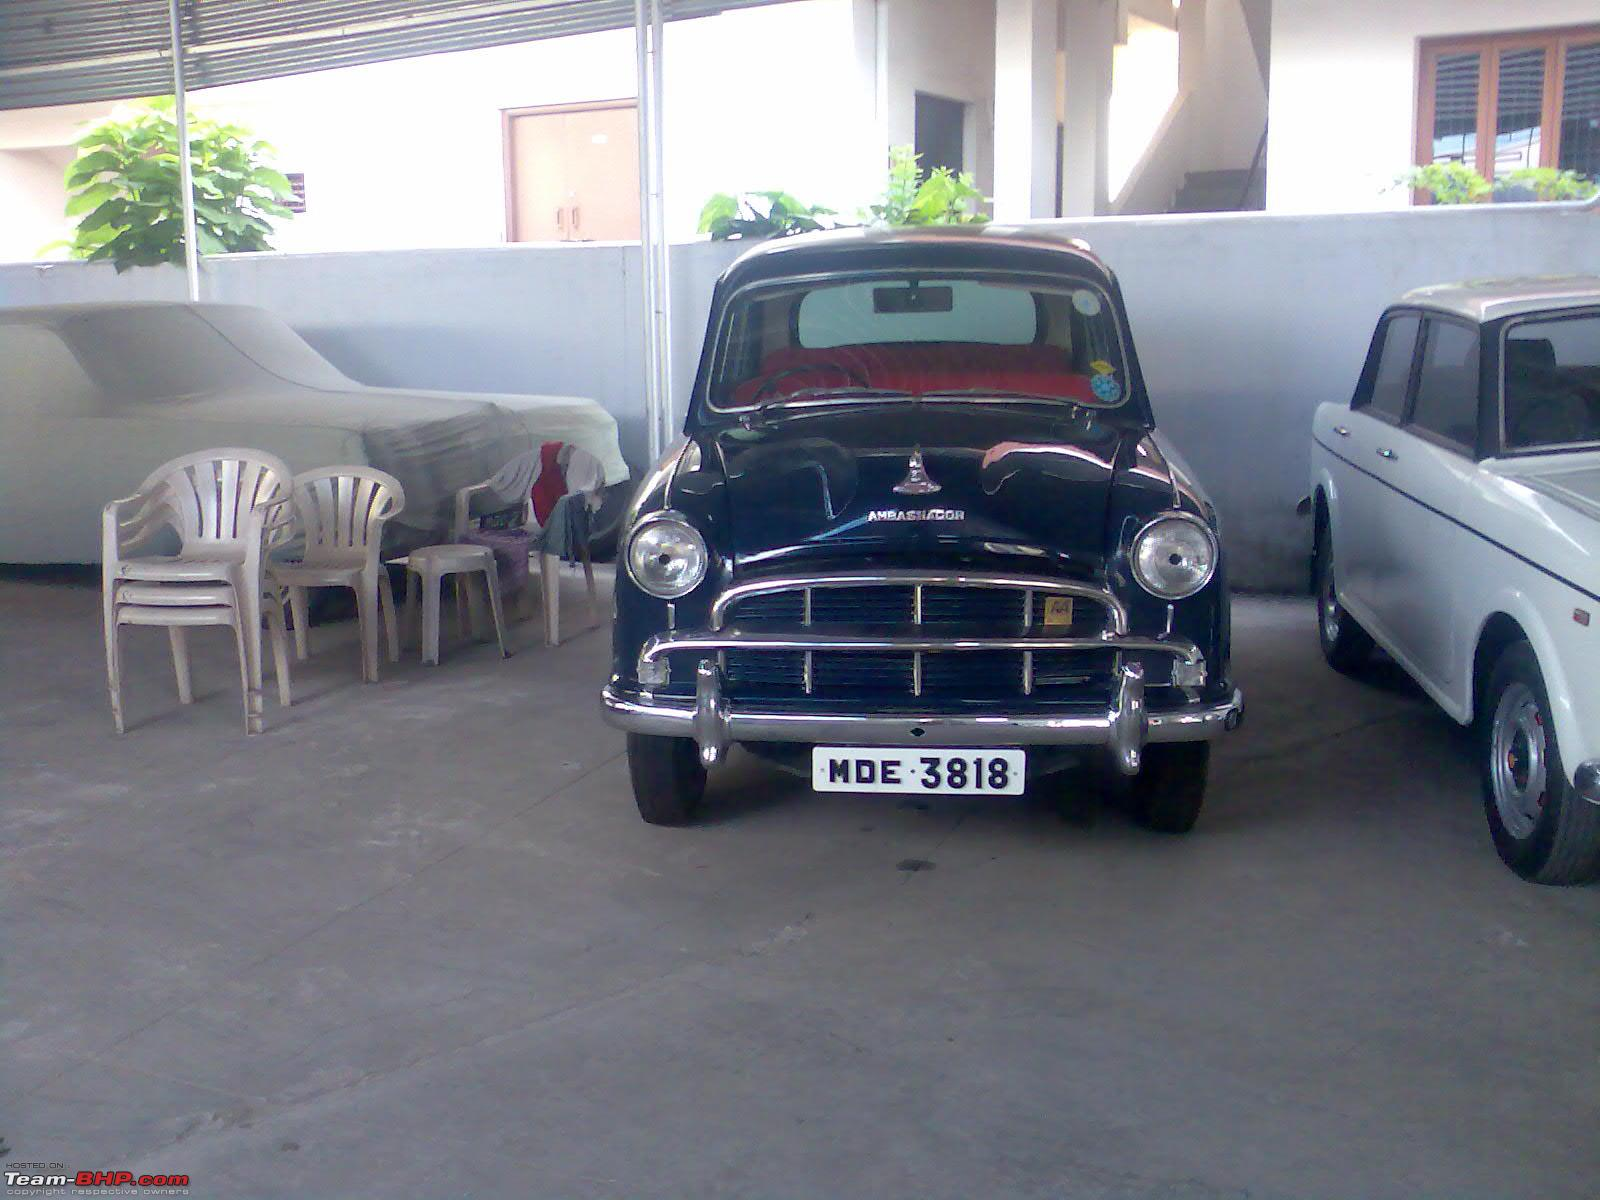 ... pics of my friend's ambassador recently restored in coimbatore